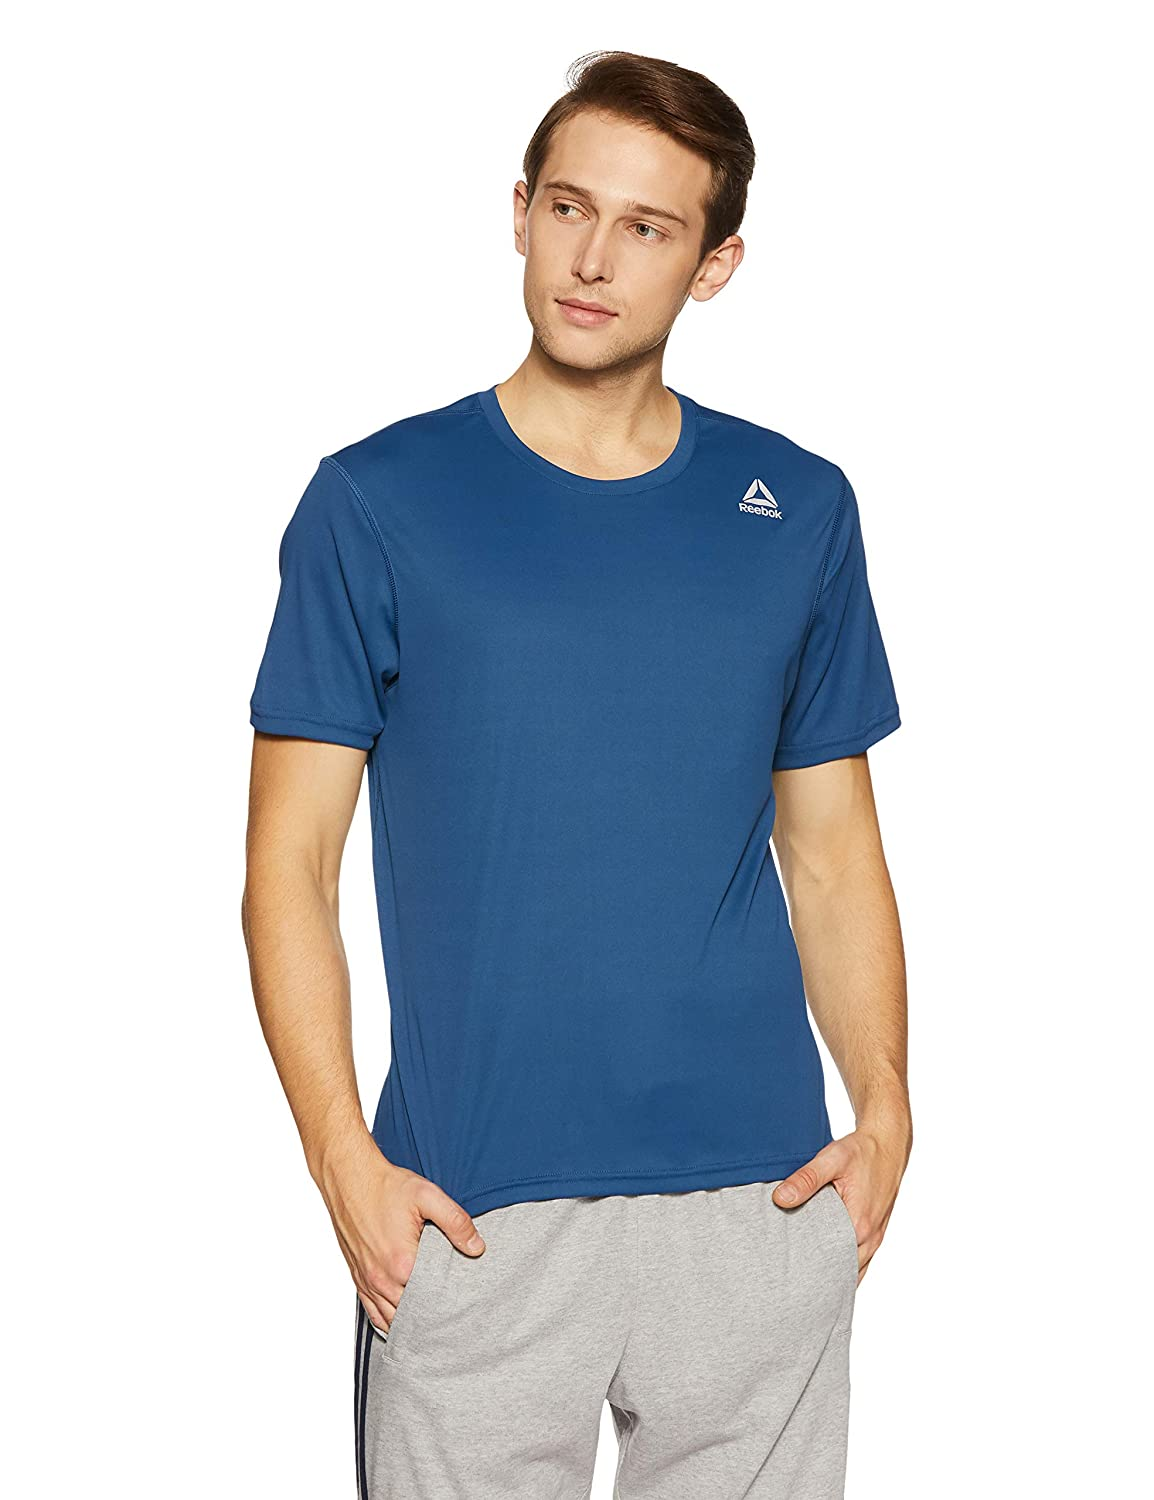 2a6138aa Reebok Men's Solid Regular Fit T-Shirt